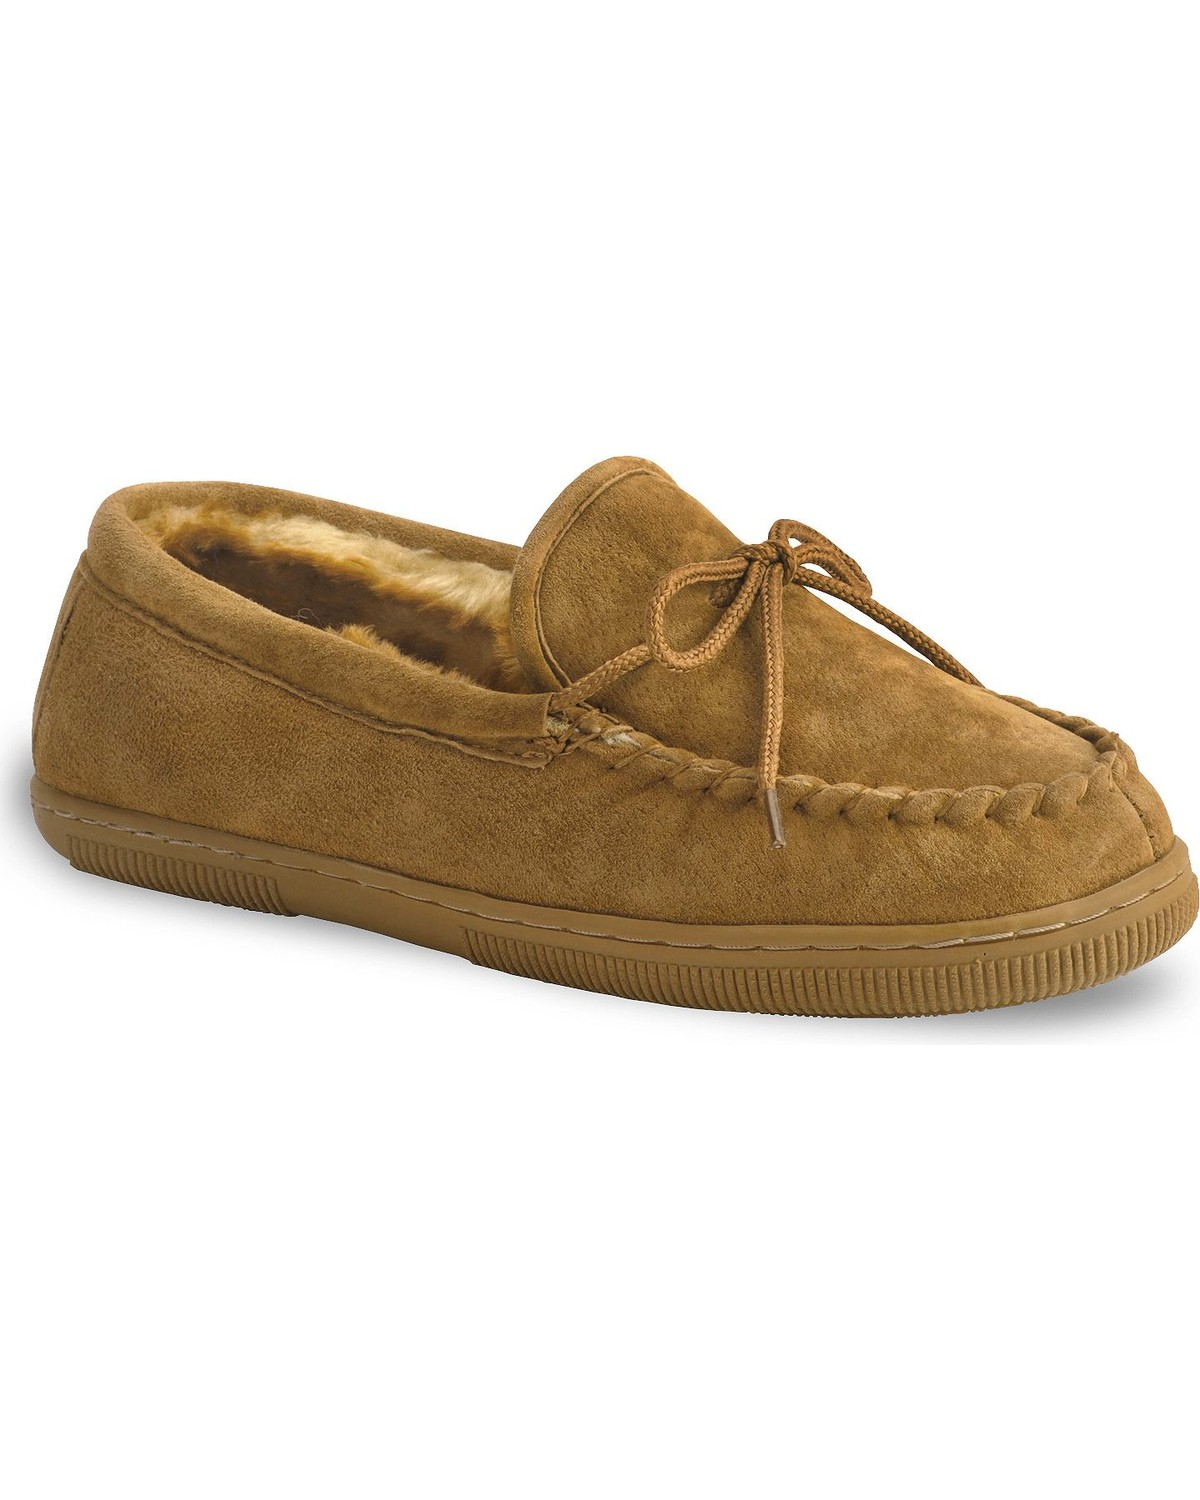 2412aaf95aa1 Chestnut Men s Leather Moccasin Slippers